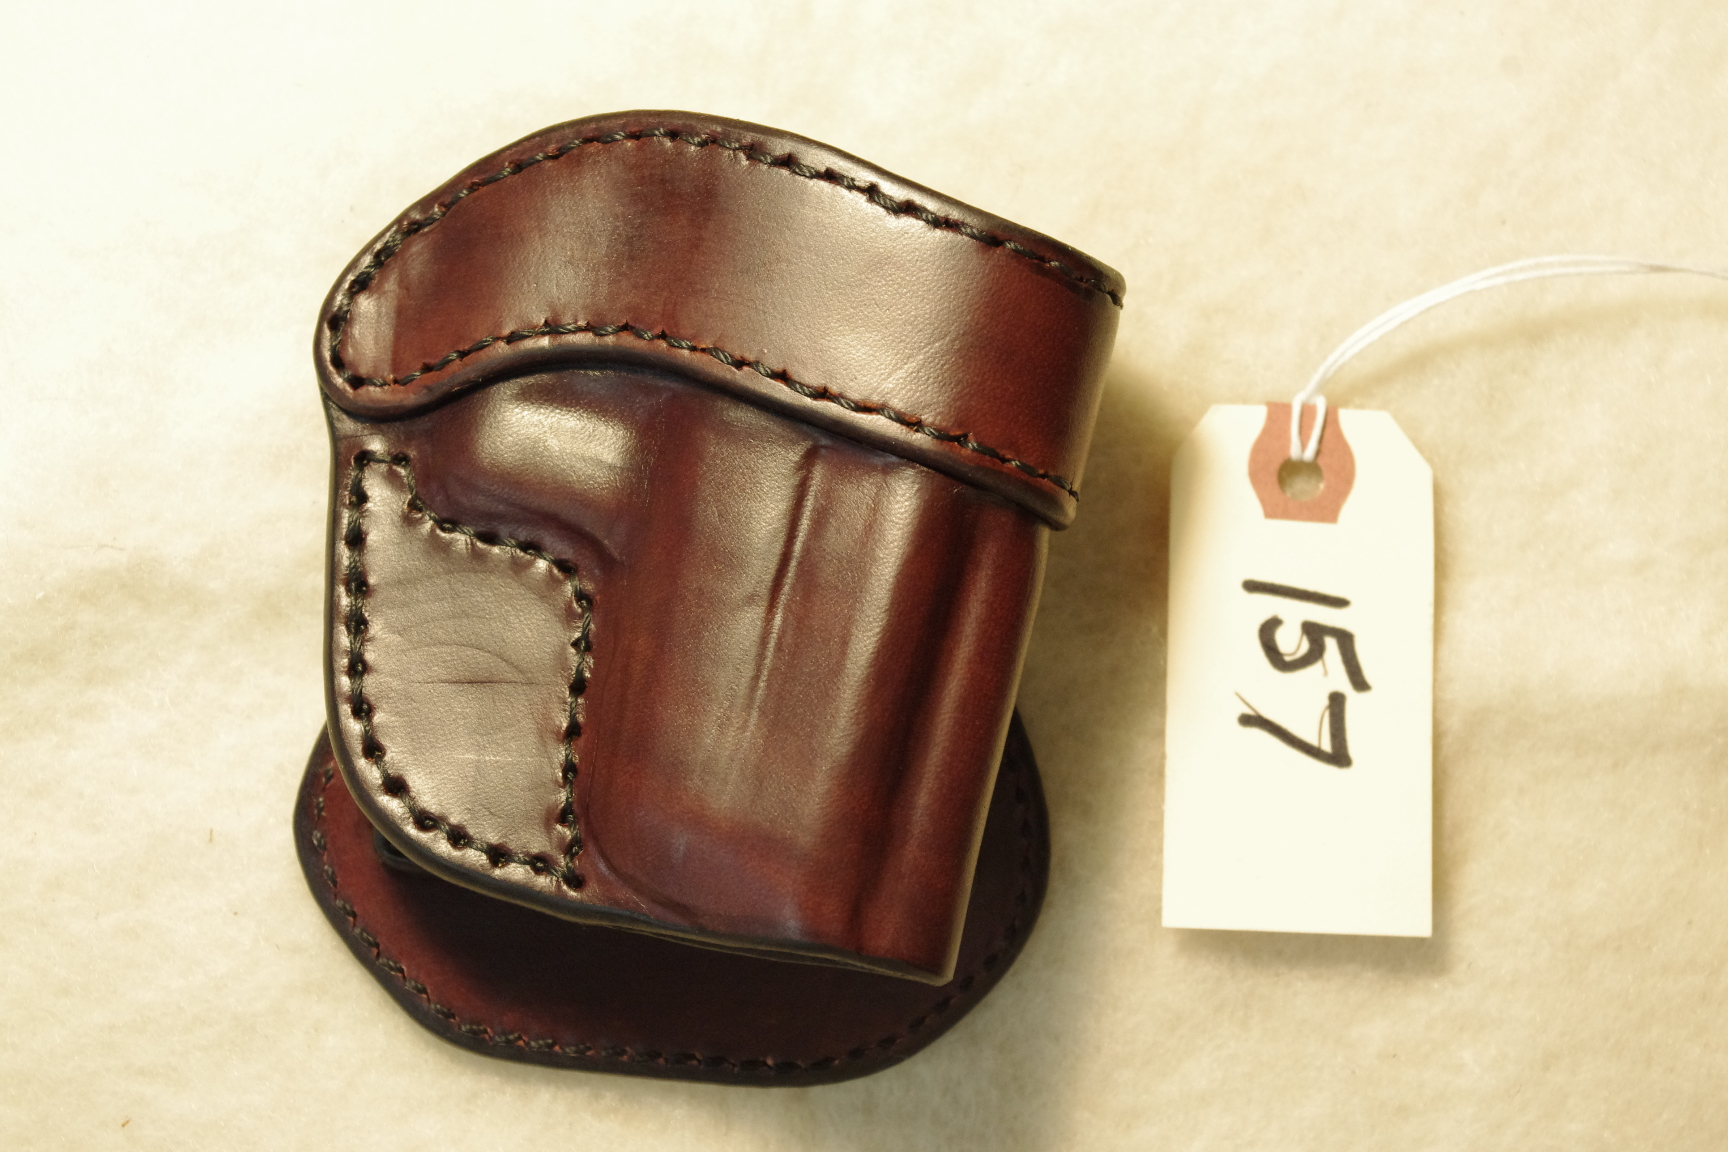 Paddle Holster for a Glock G42 (380) (sold)